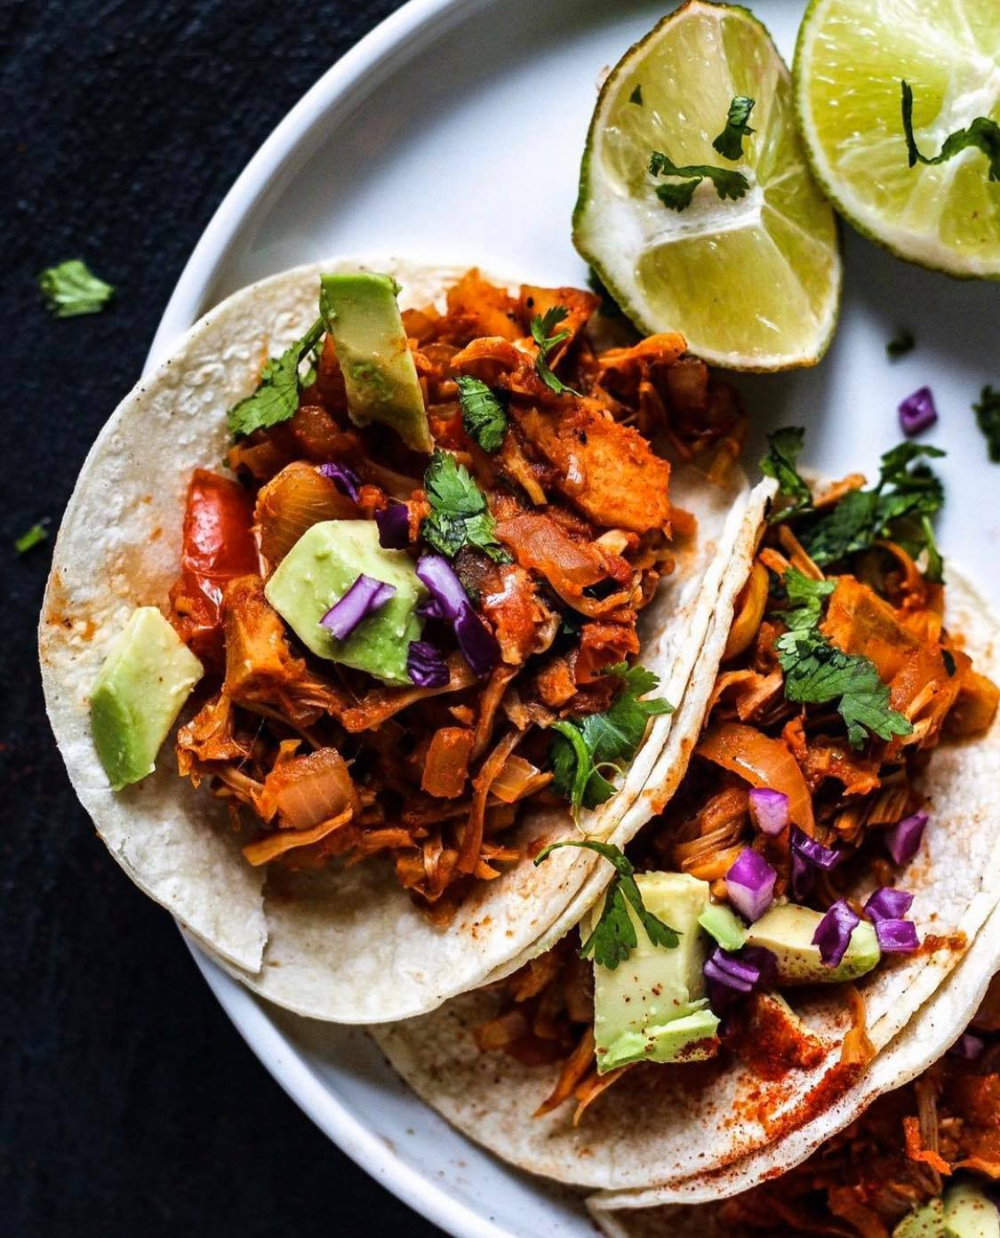 Oil Free Spicy Vegan Jackfruit Tacos Recipe In 2020 Jackfruit Tacos Jackfruit Delicious Vegan Recipes